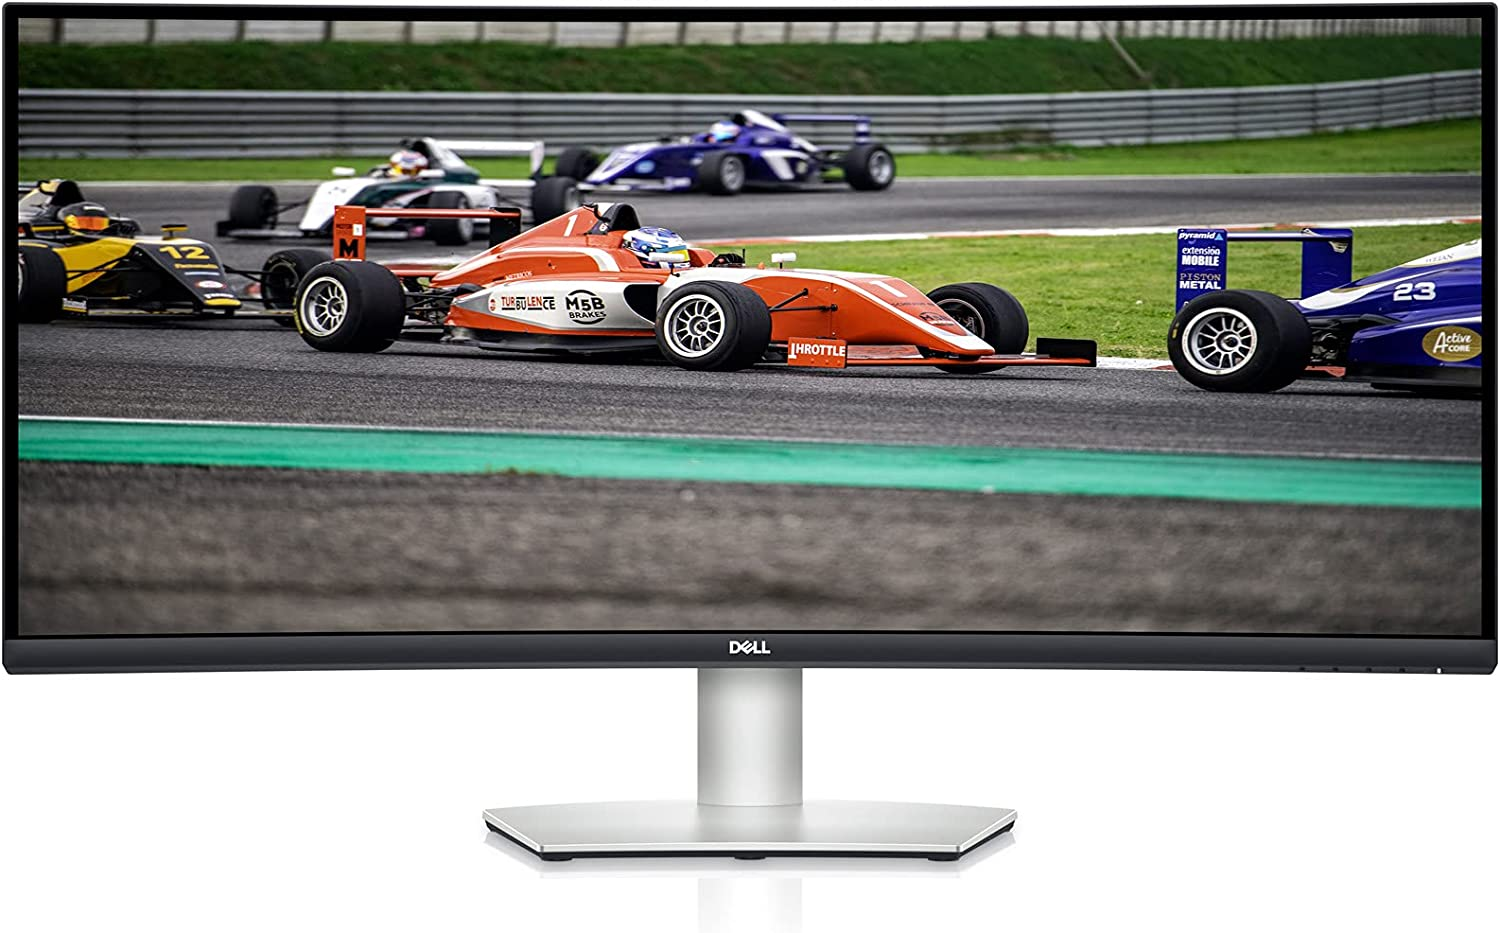 Dell S3422DW - 34-inch WQHD 21:9 Curved Monitor, 3440 x 1440 at 100Hz, 1800R, Built-in Dual 5W Speakers, 4ms Grey-to-Grey Response Time (Extreme Mode), 16.7 Million Colors, Silver (Latest Model)